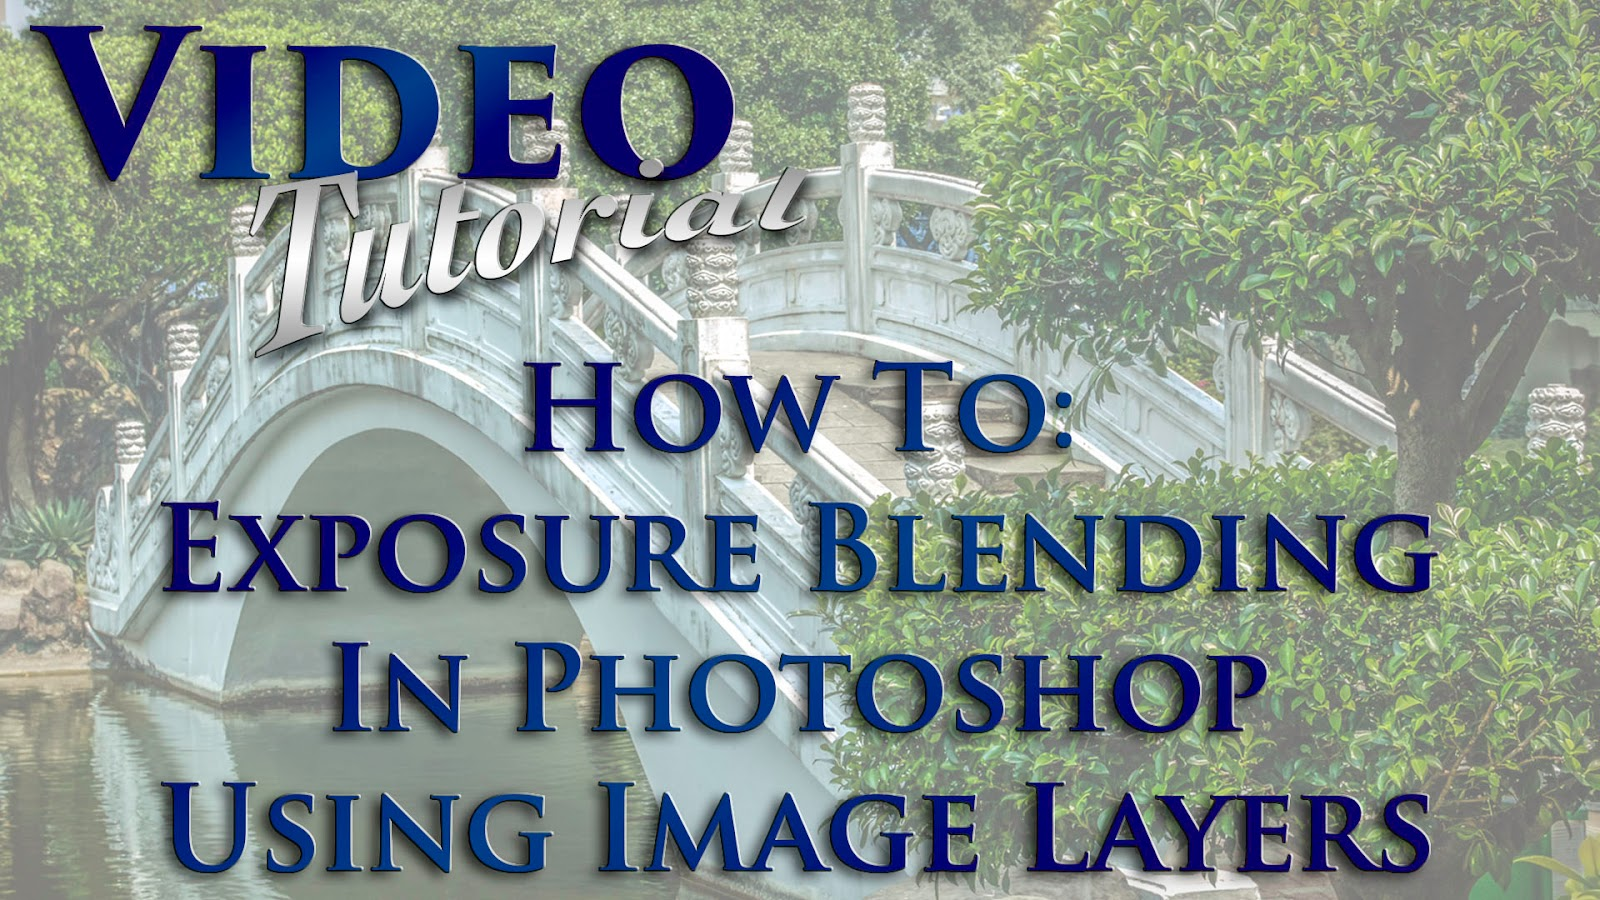 How To: Exposure Blending In Photoshop Using Image Layers | Video Tutorial